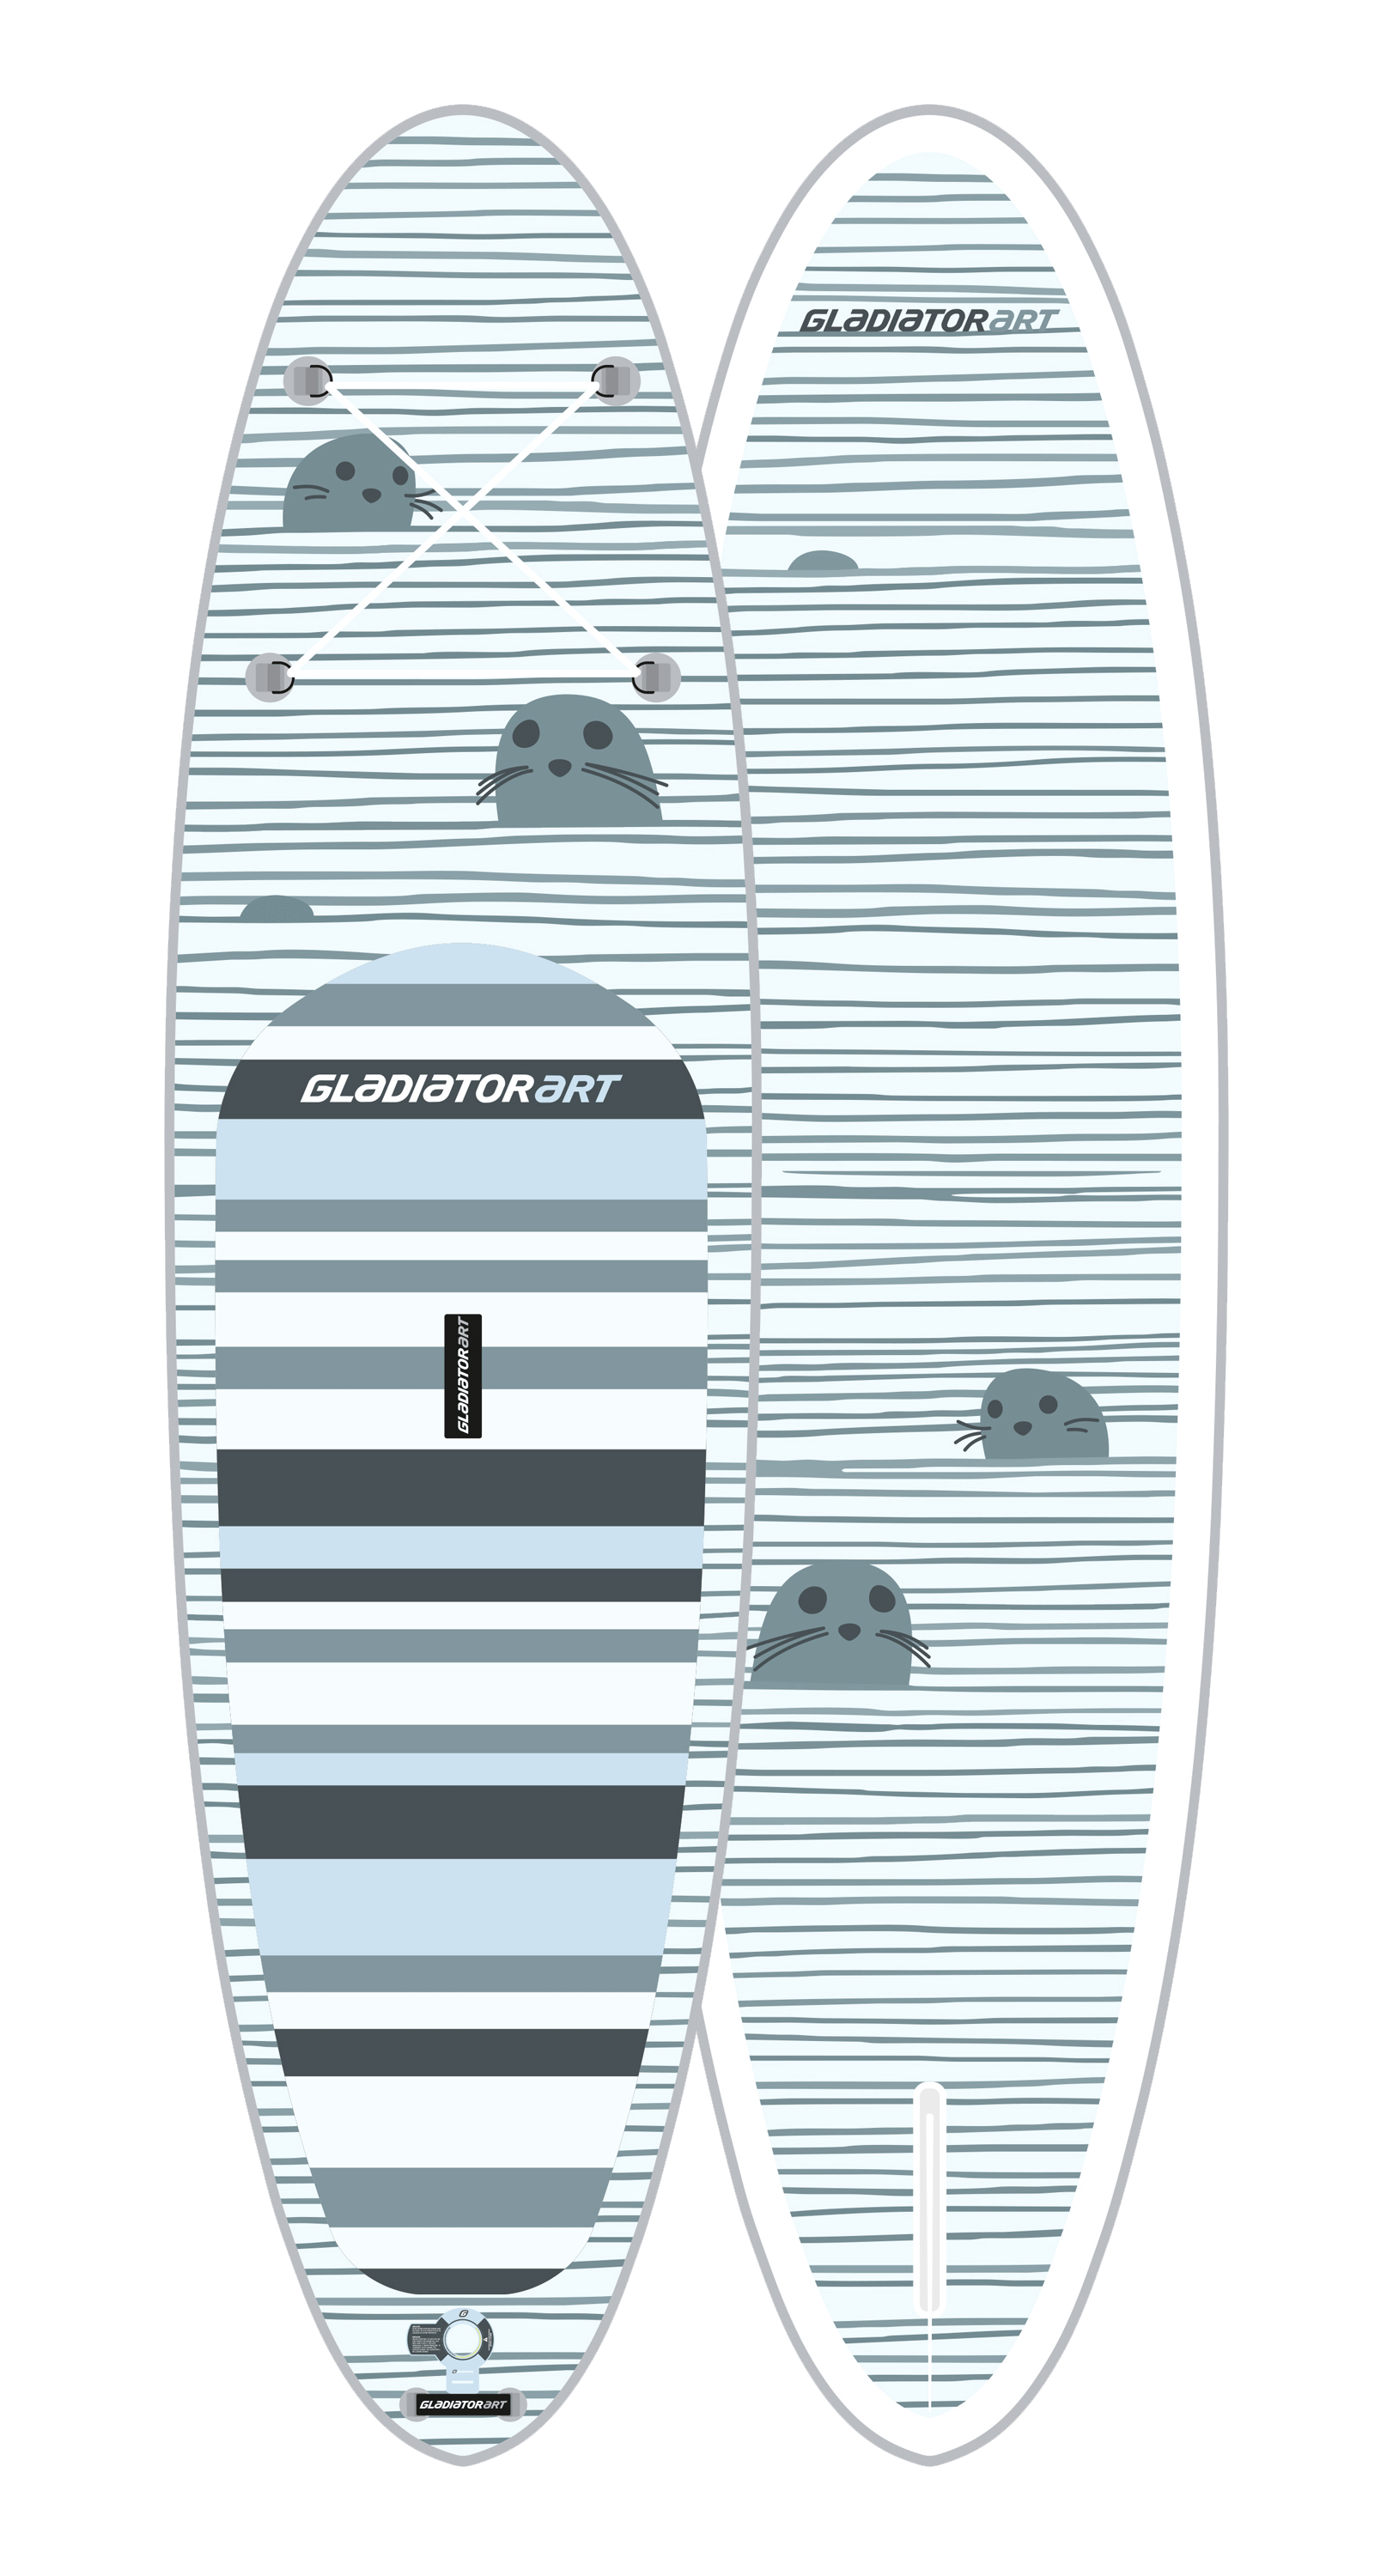 Надувной SUP борд GLADIATOR ART SEAL 10.6